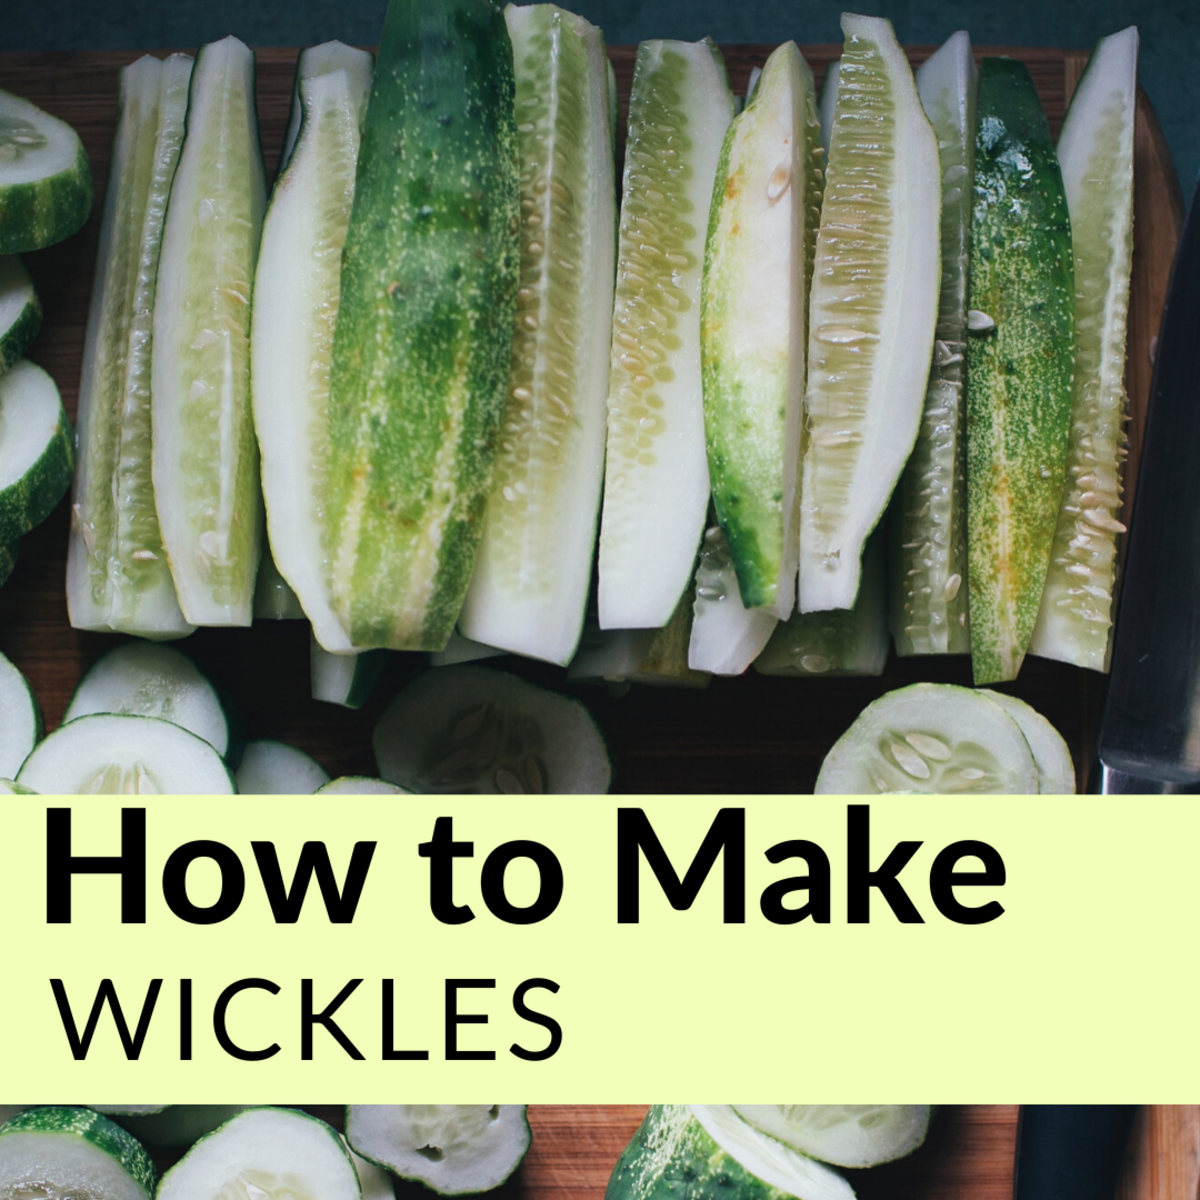 Homemade Wickles: How to Make Hot, Sweet, Garlic-Butter Pickles